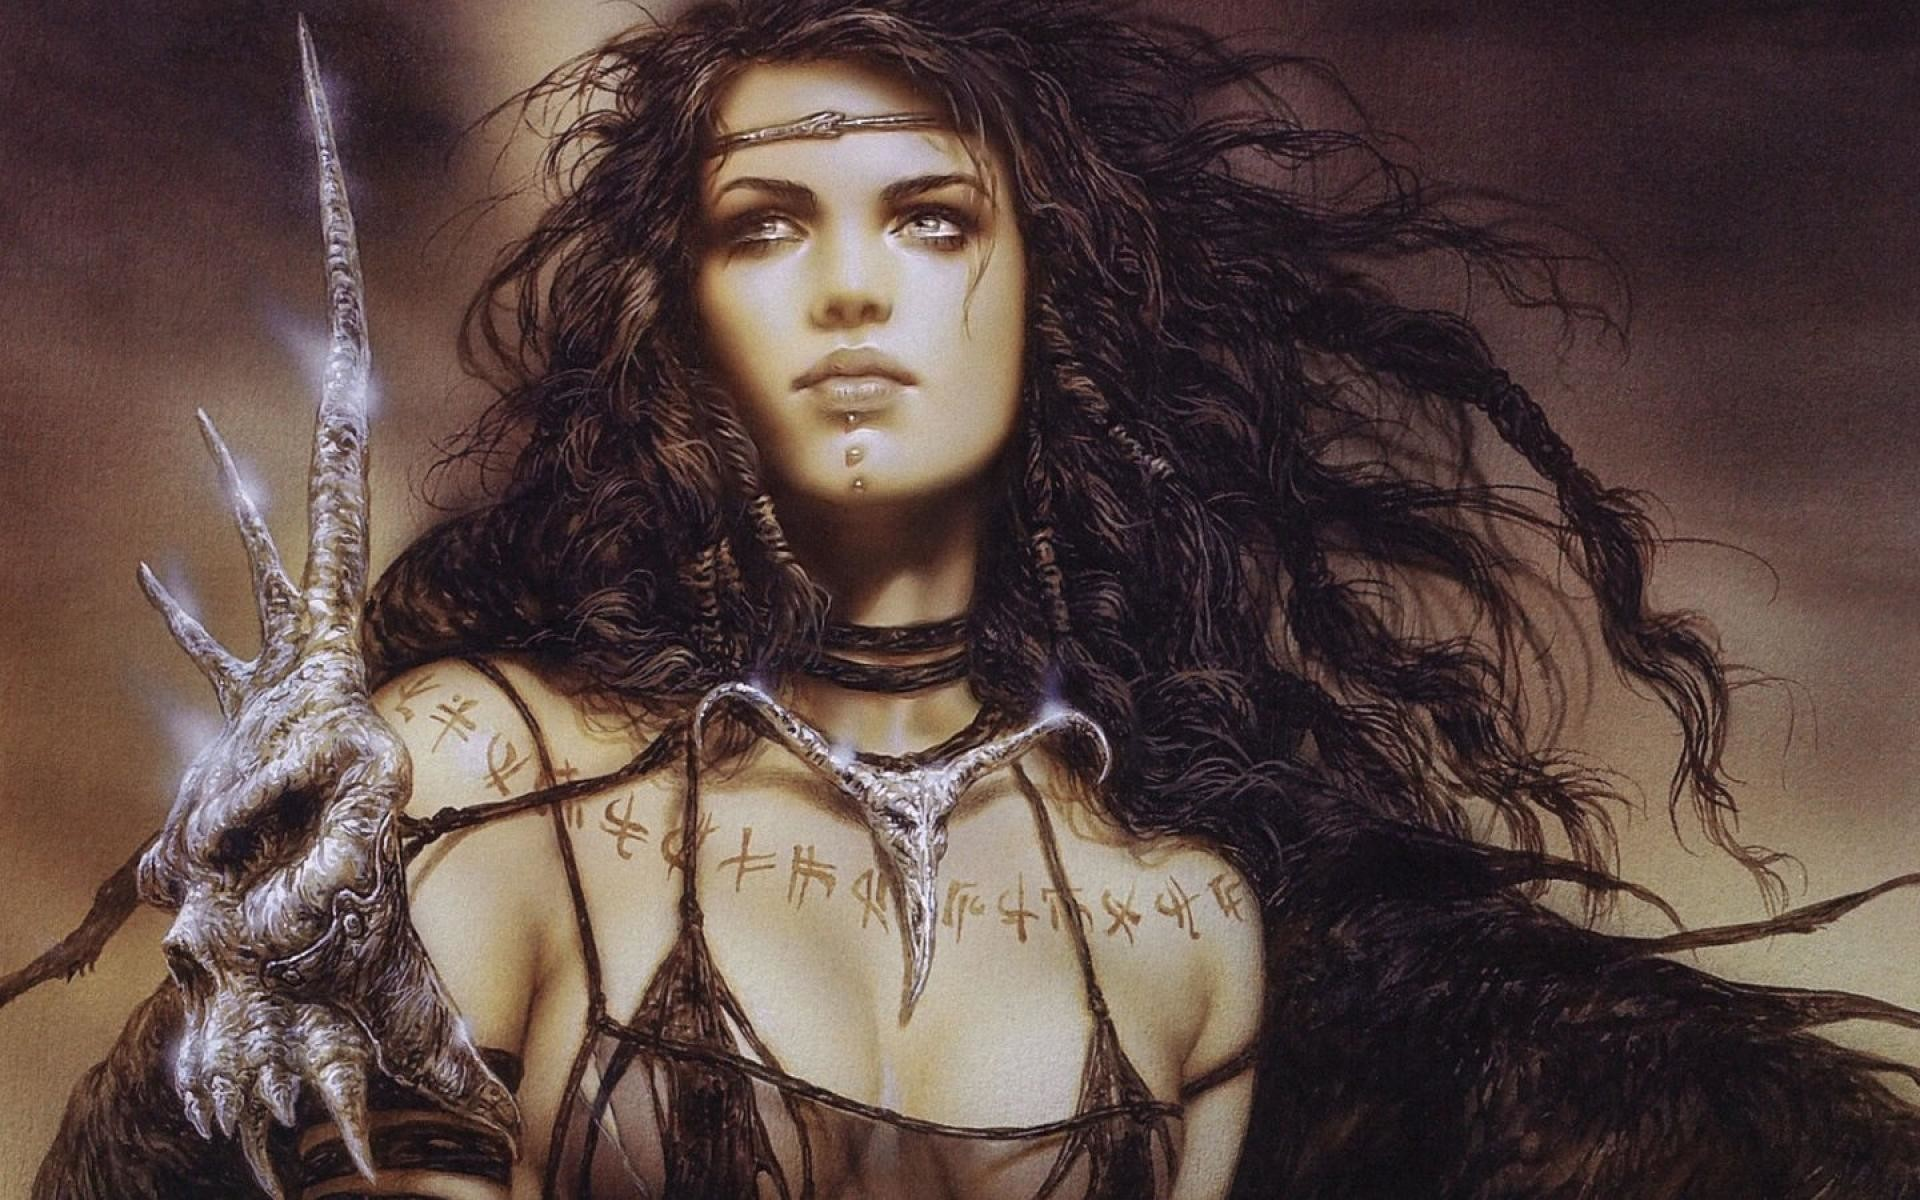 1920x1200 Luis Royo images Female Warrior Beauty HD wallpaper and background photos